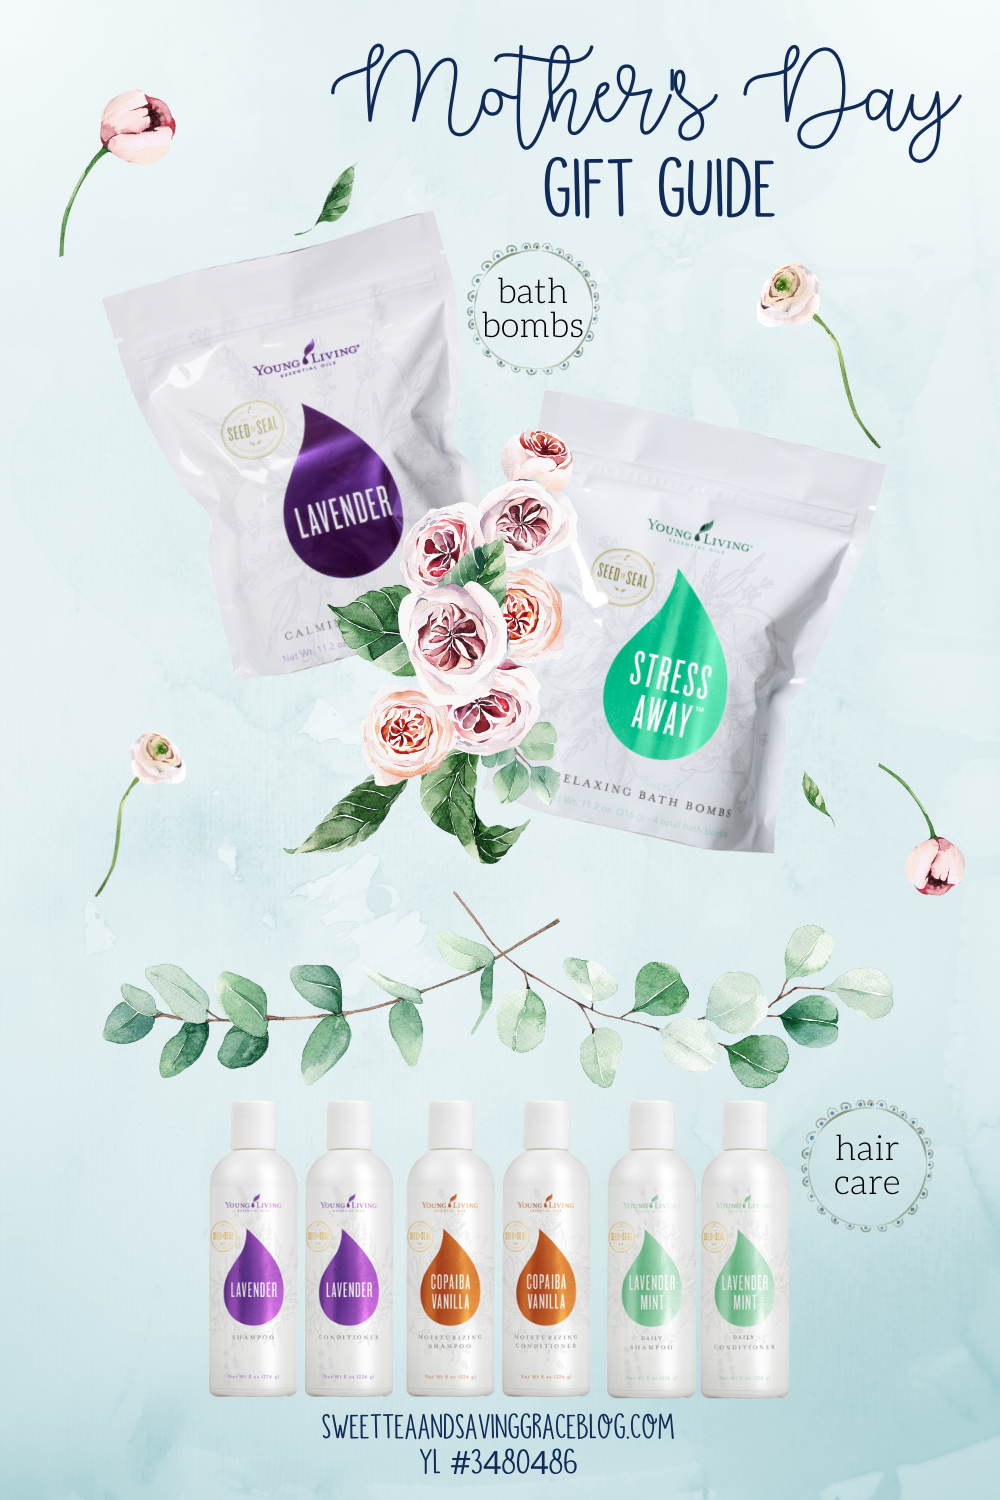 mother's day wellness gift guide young living essential oils non-toxic all-natural spa treatment lavender bath bombs shower steamers essential oil shampoo conditioner